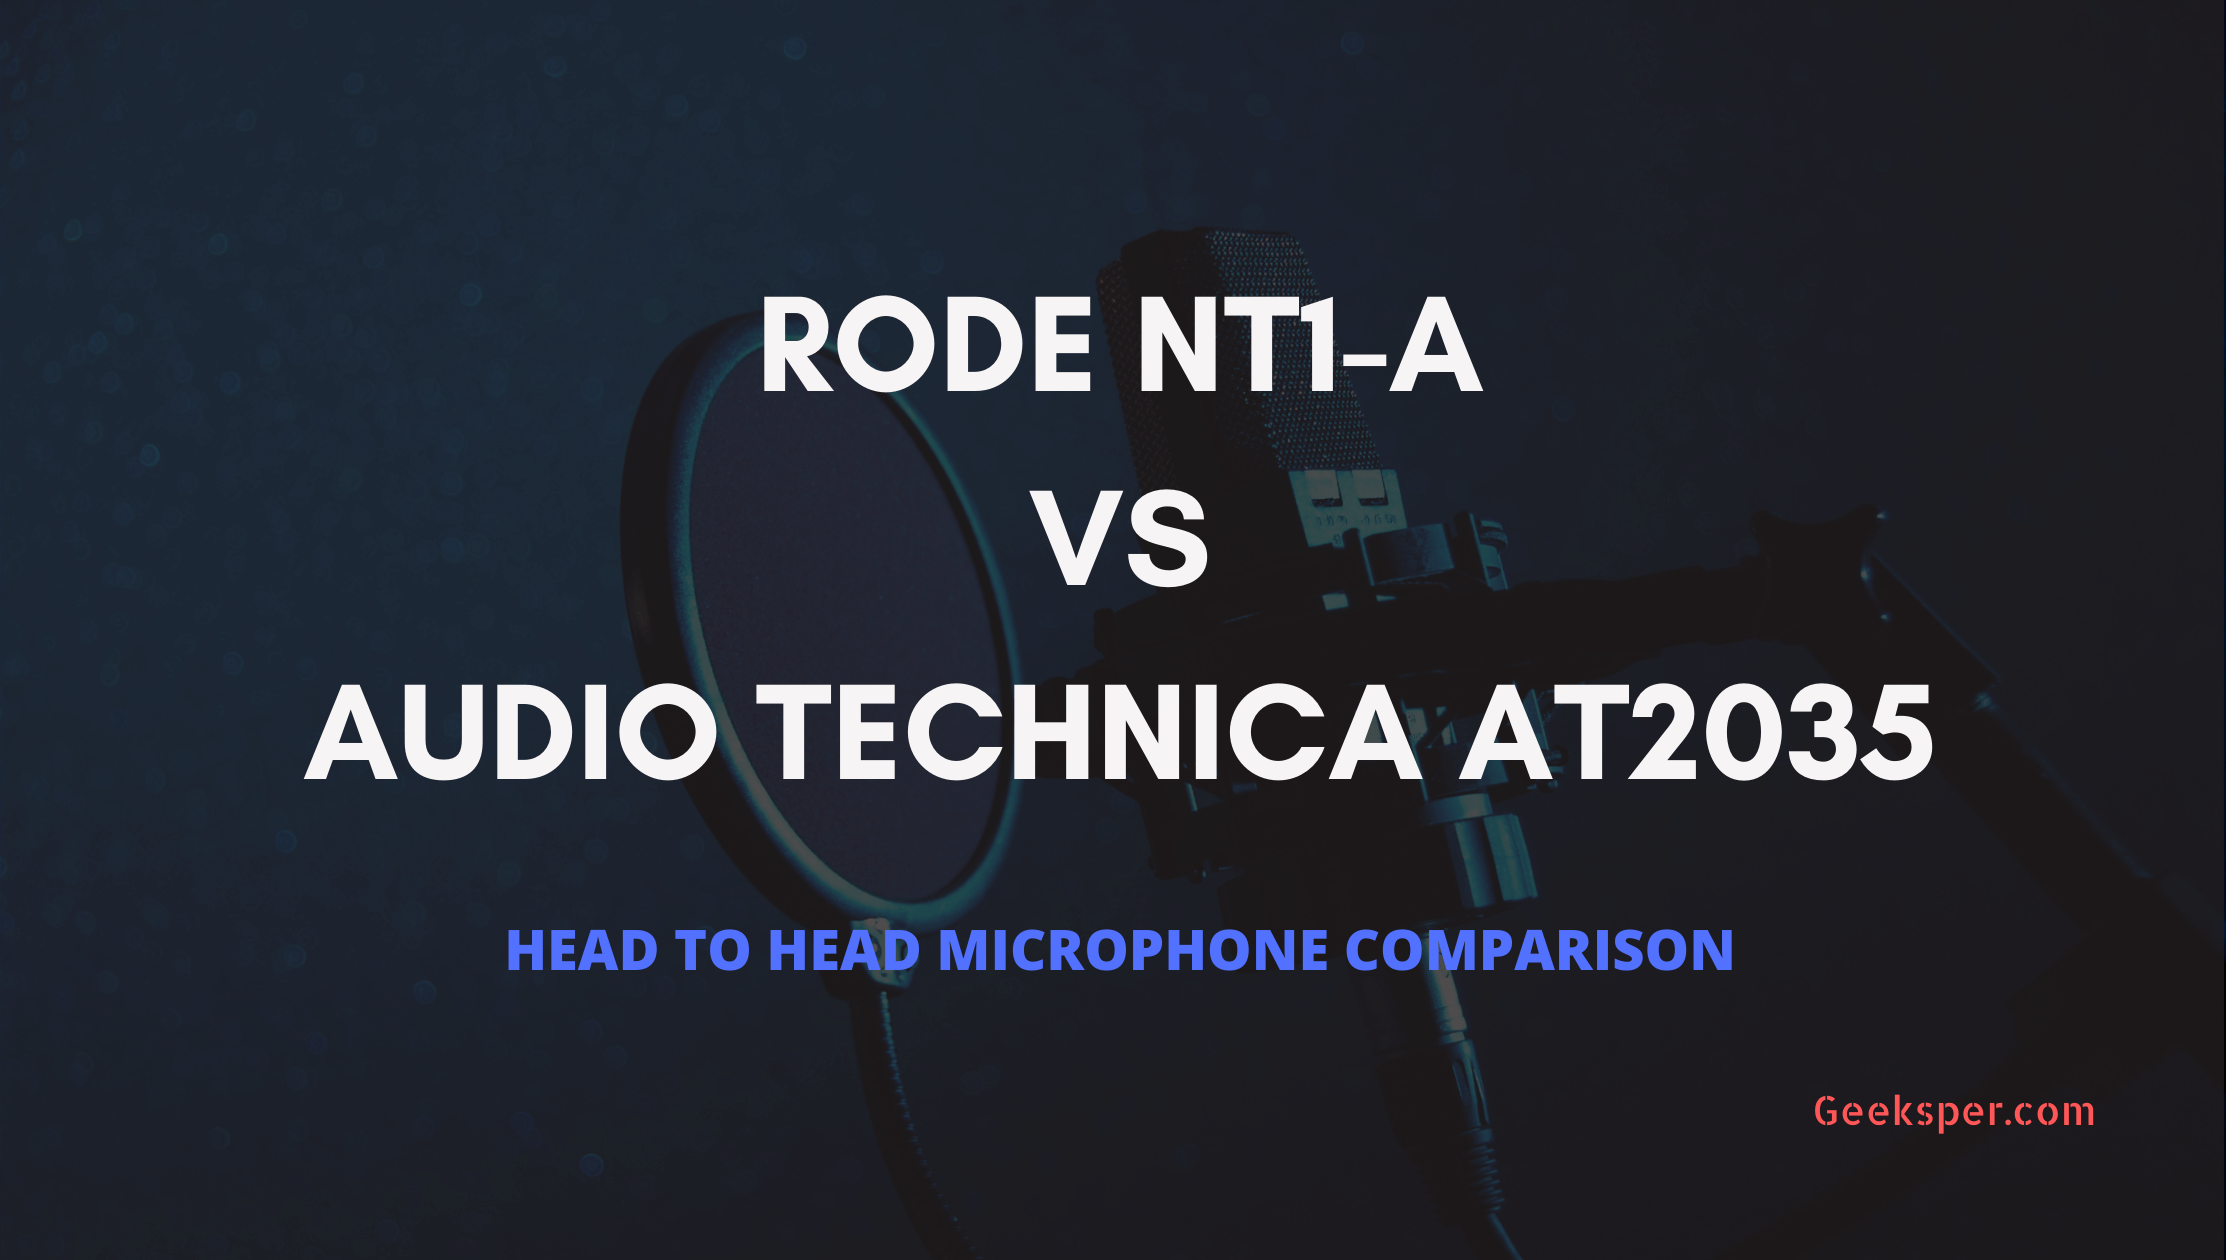 Rode NT1-A vs Audio Technica AT2035 Microphone